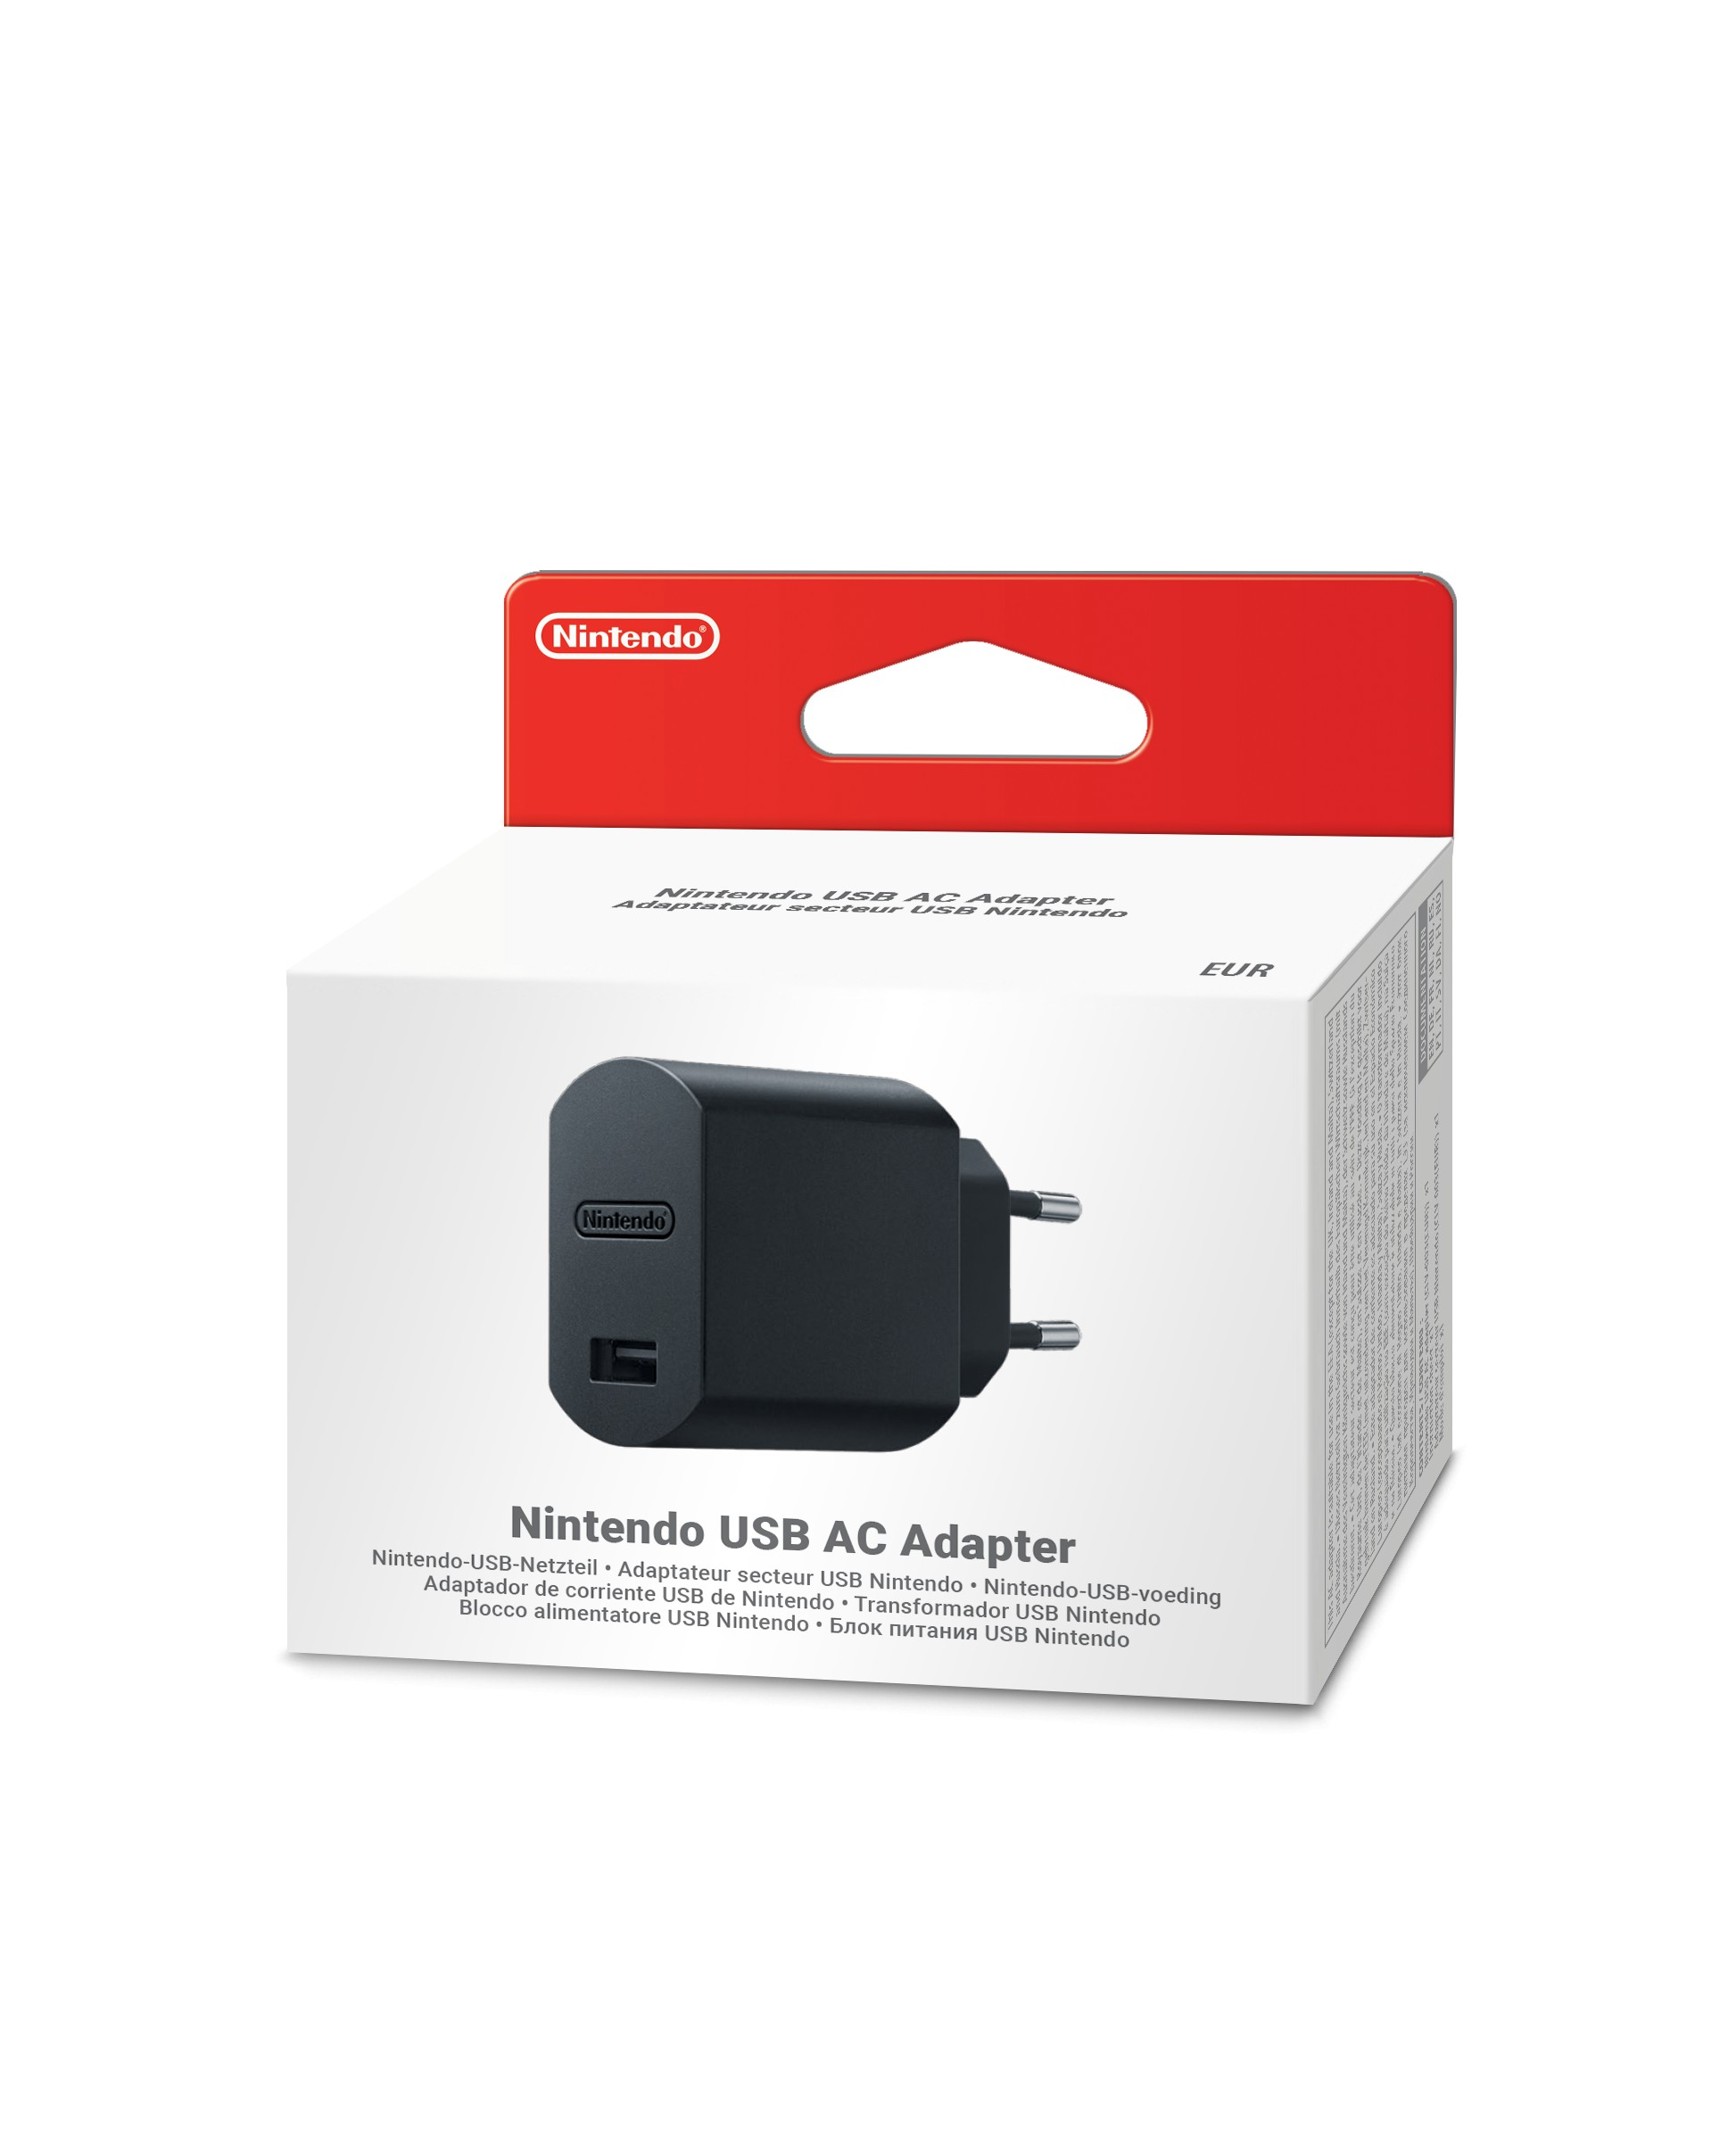 Nintendo USB AC Adapter